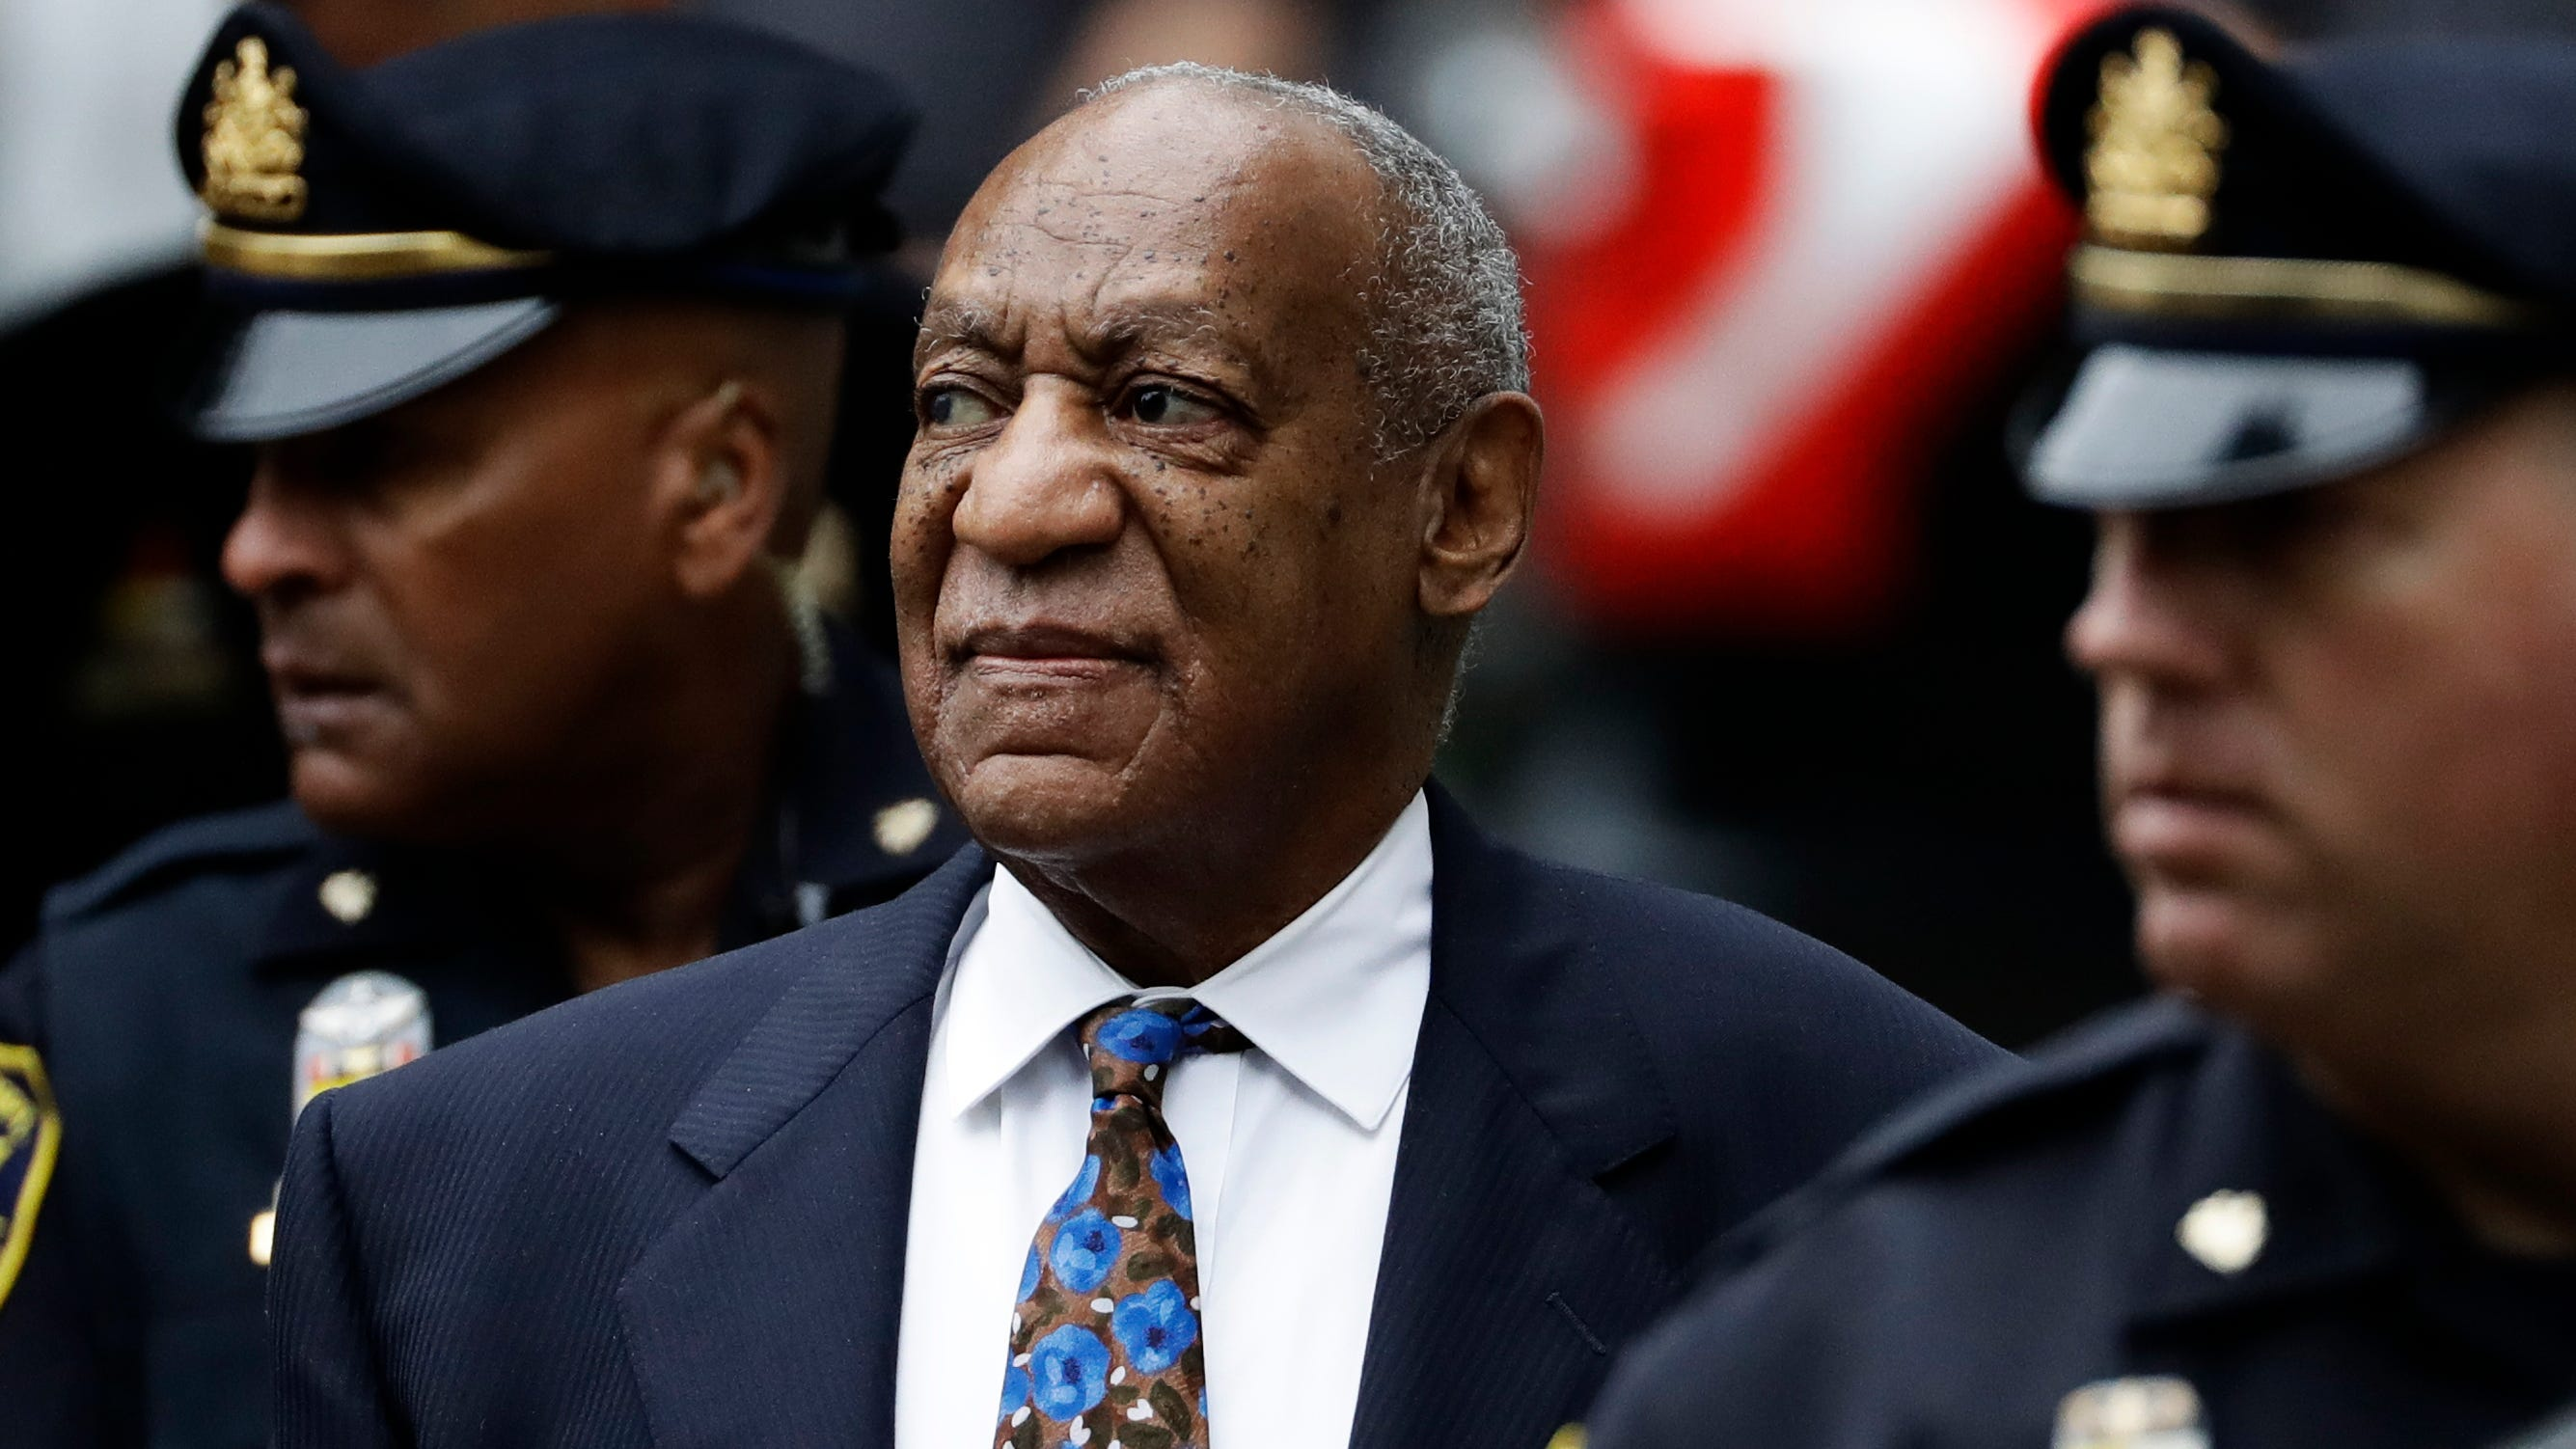 Bill Cosby arrives at the Montgomery County courthouse in Norristown, Pennysylvania, for the first day of his sentencing on indecent sexual-assault charges. He was convicted in April.